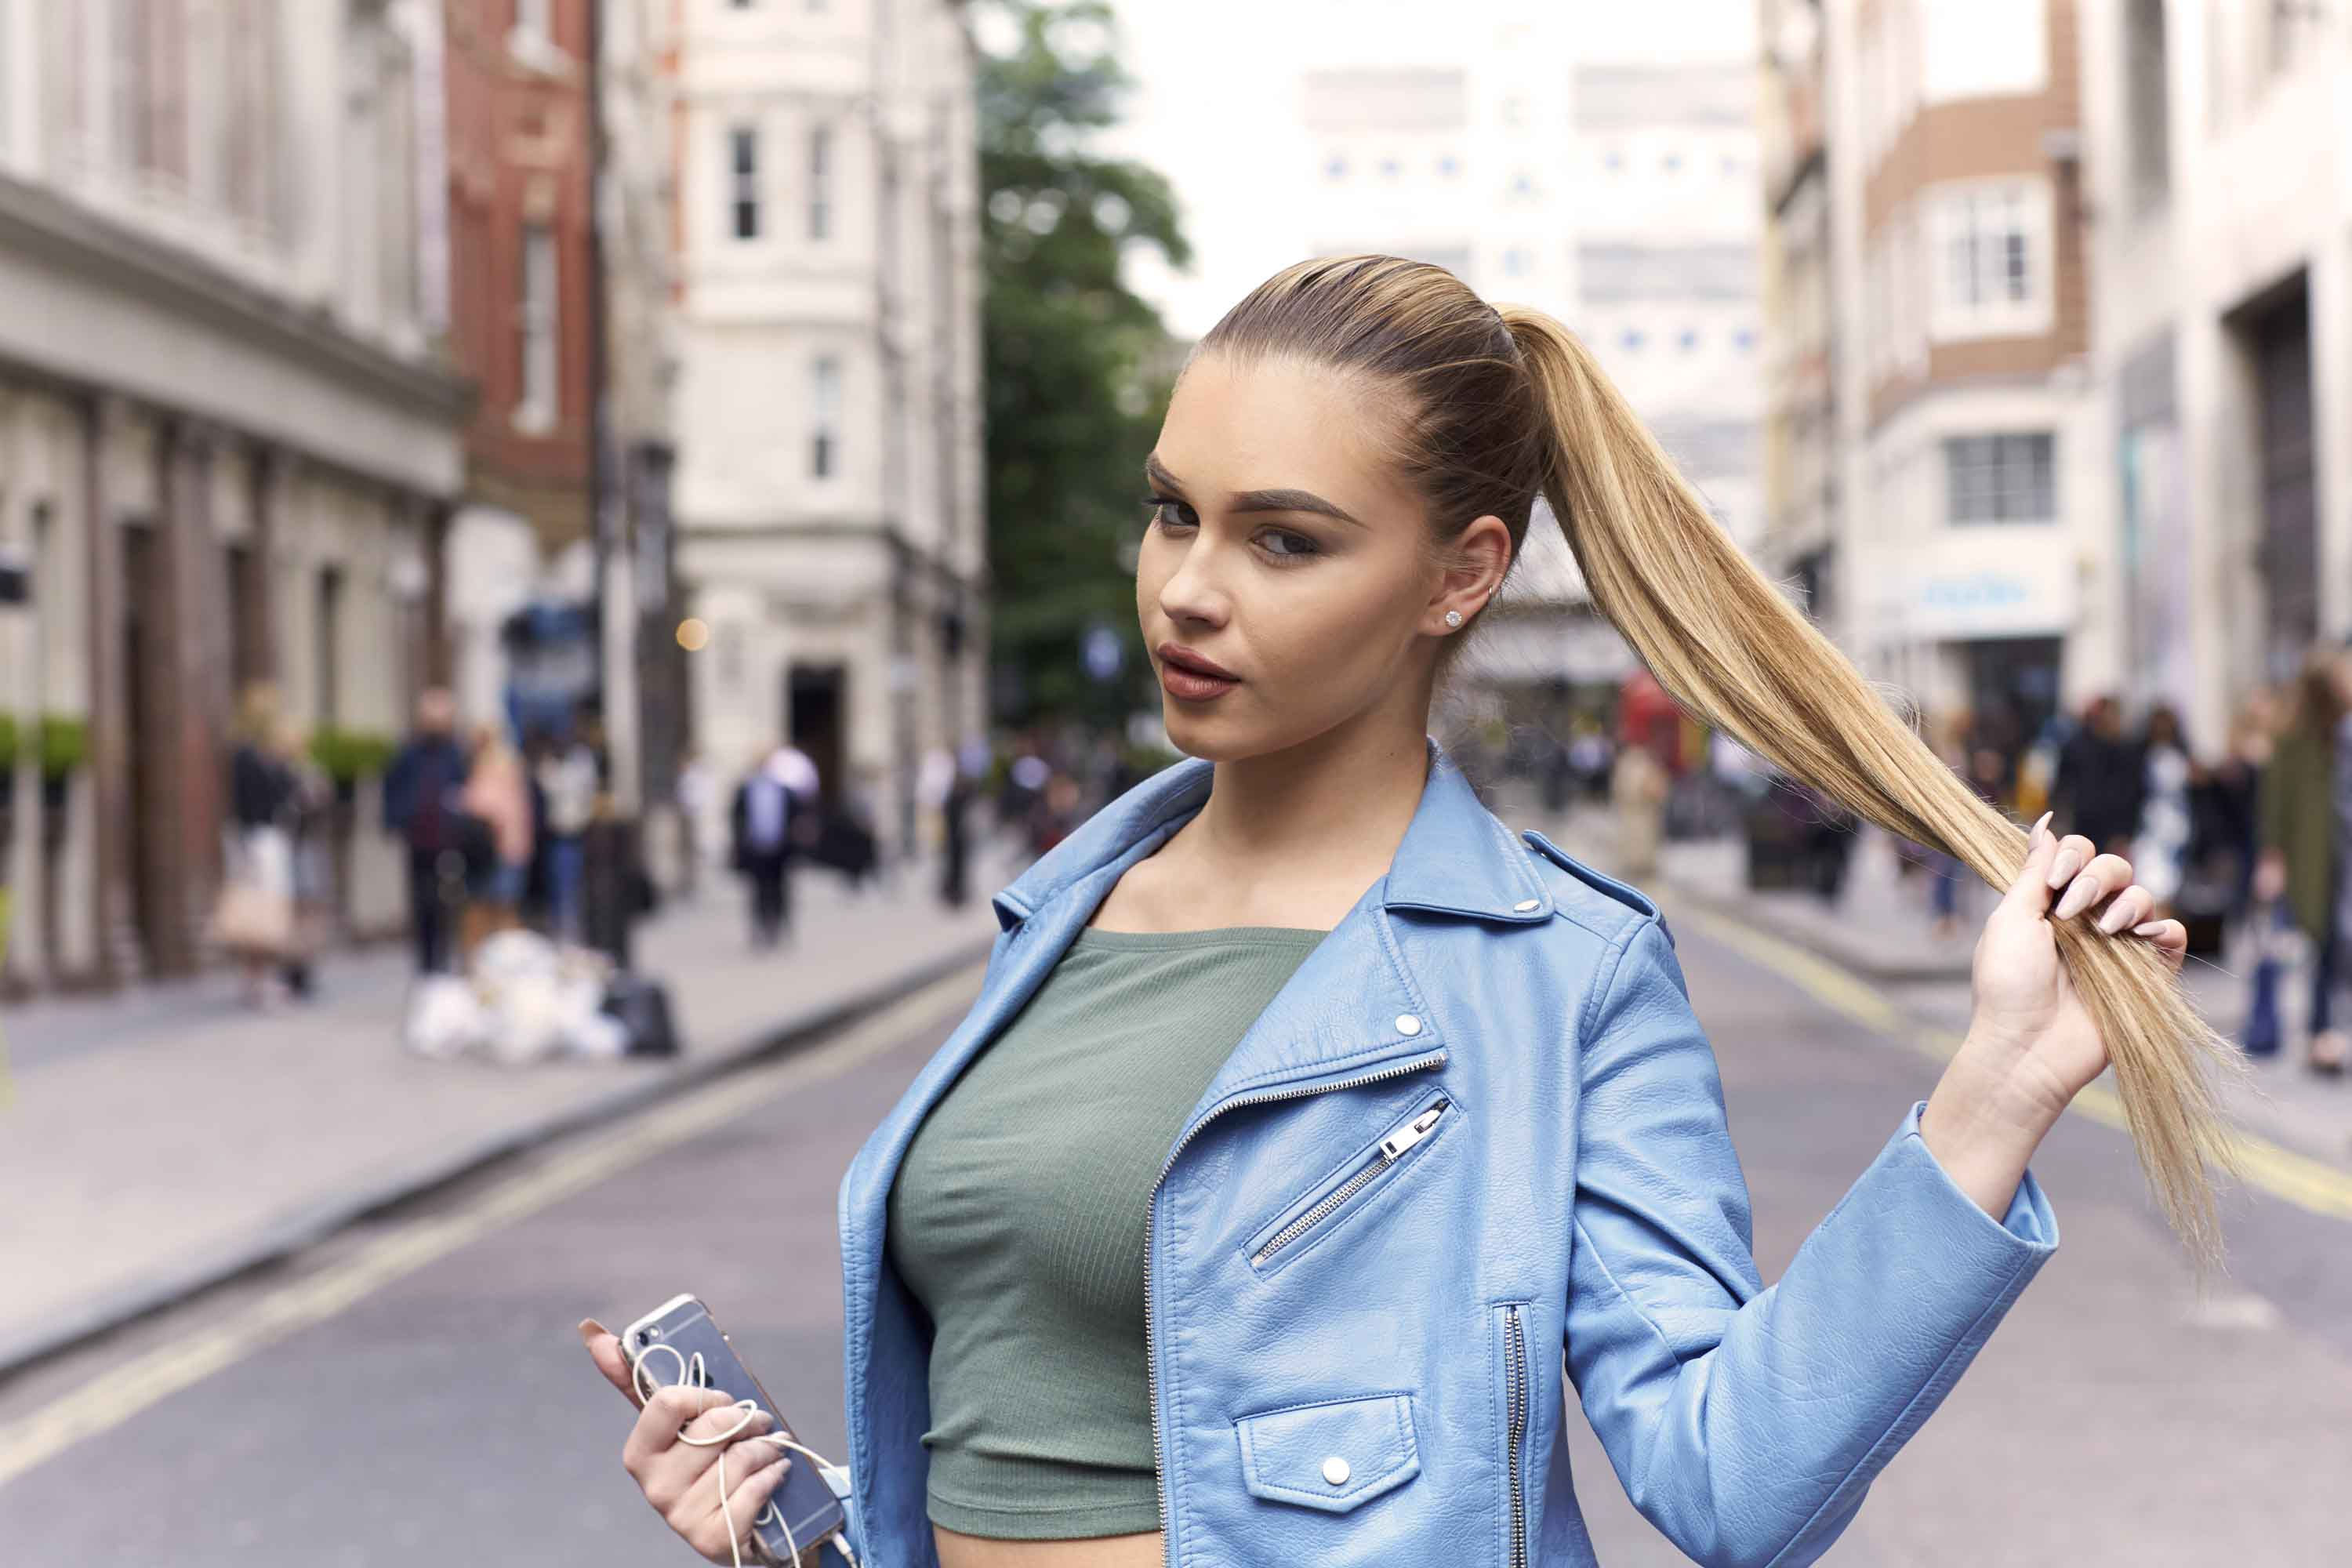 Club hairstyles: Image of a blonde woman with a sleek high ponytail wearing a blue leather jacket and khaki green top, standing in the middle of the road